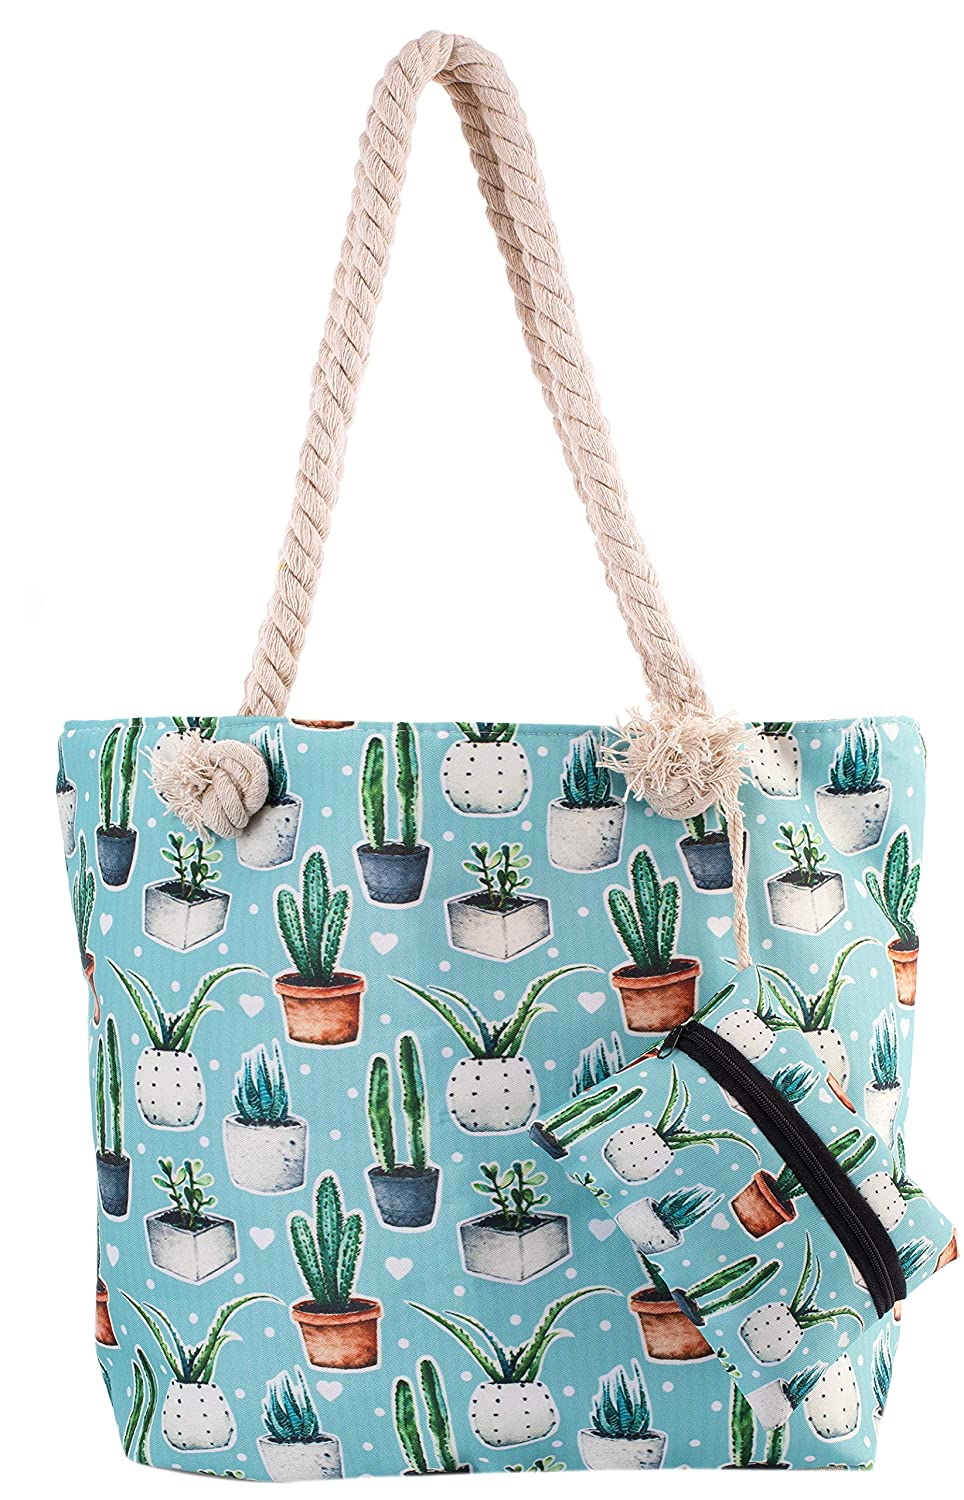 7b7e9db10f0b Cactus Beach Shoulder Tote Bag - Cactus Baby Blue Weekender Travel Bag